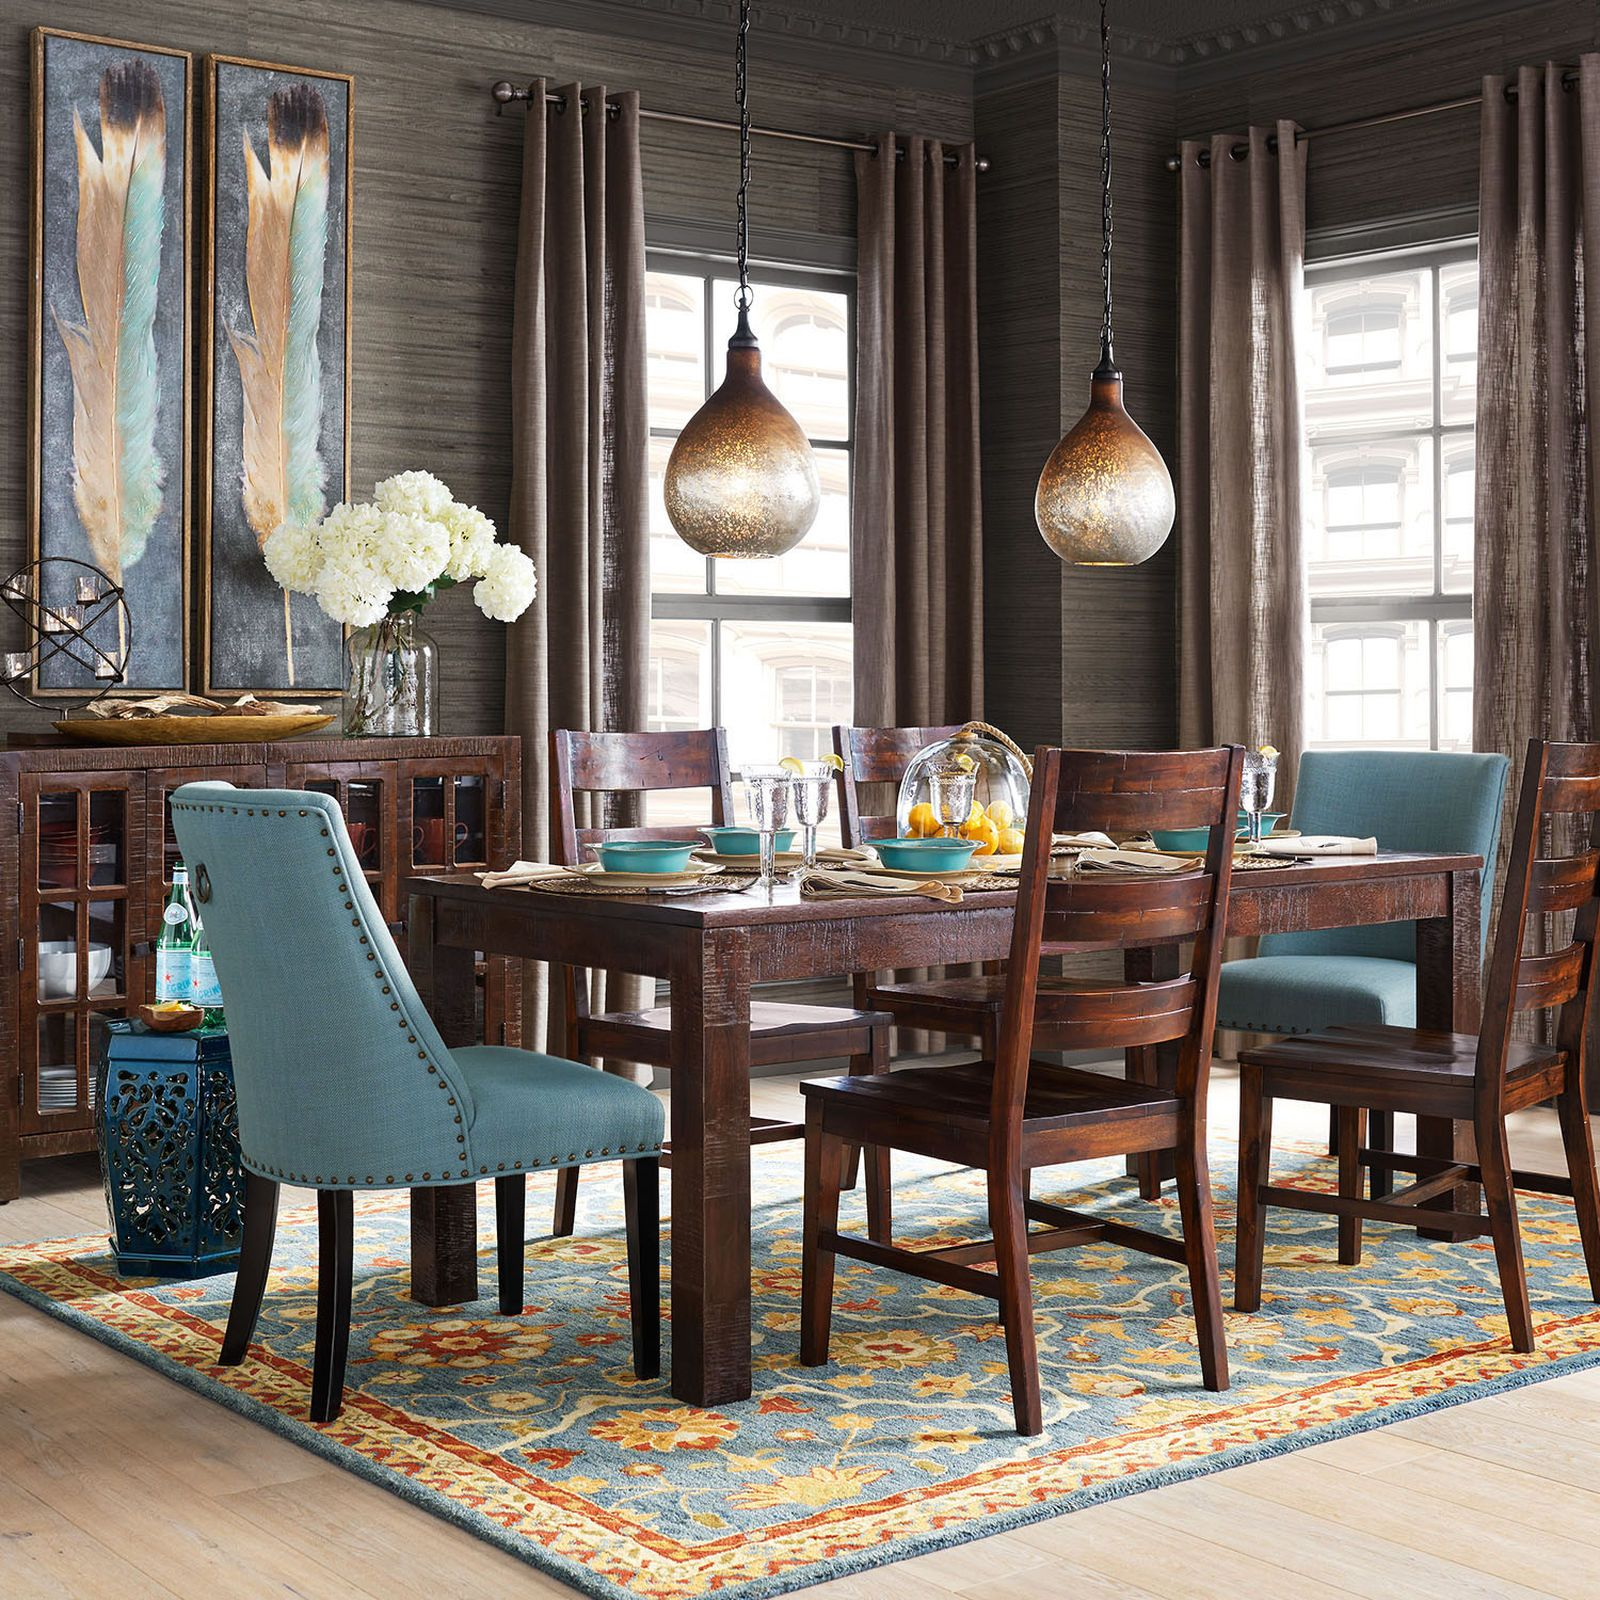 Build Your Own Parsons Brown & Corinne Dining Collection